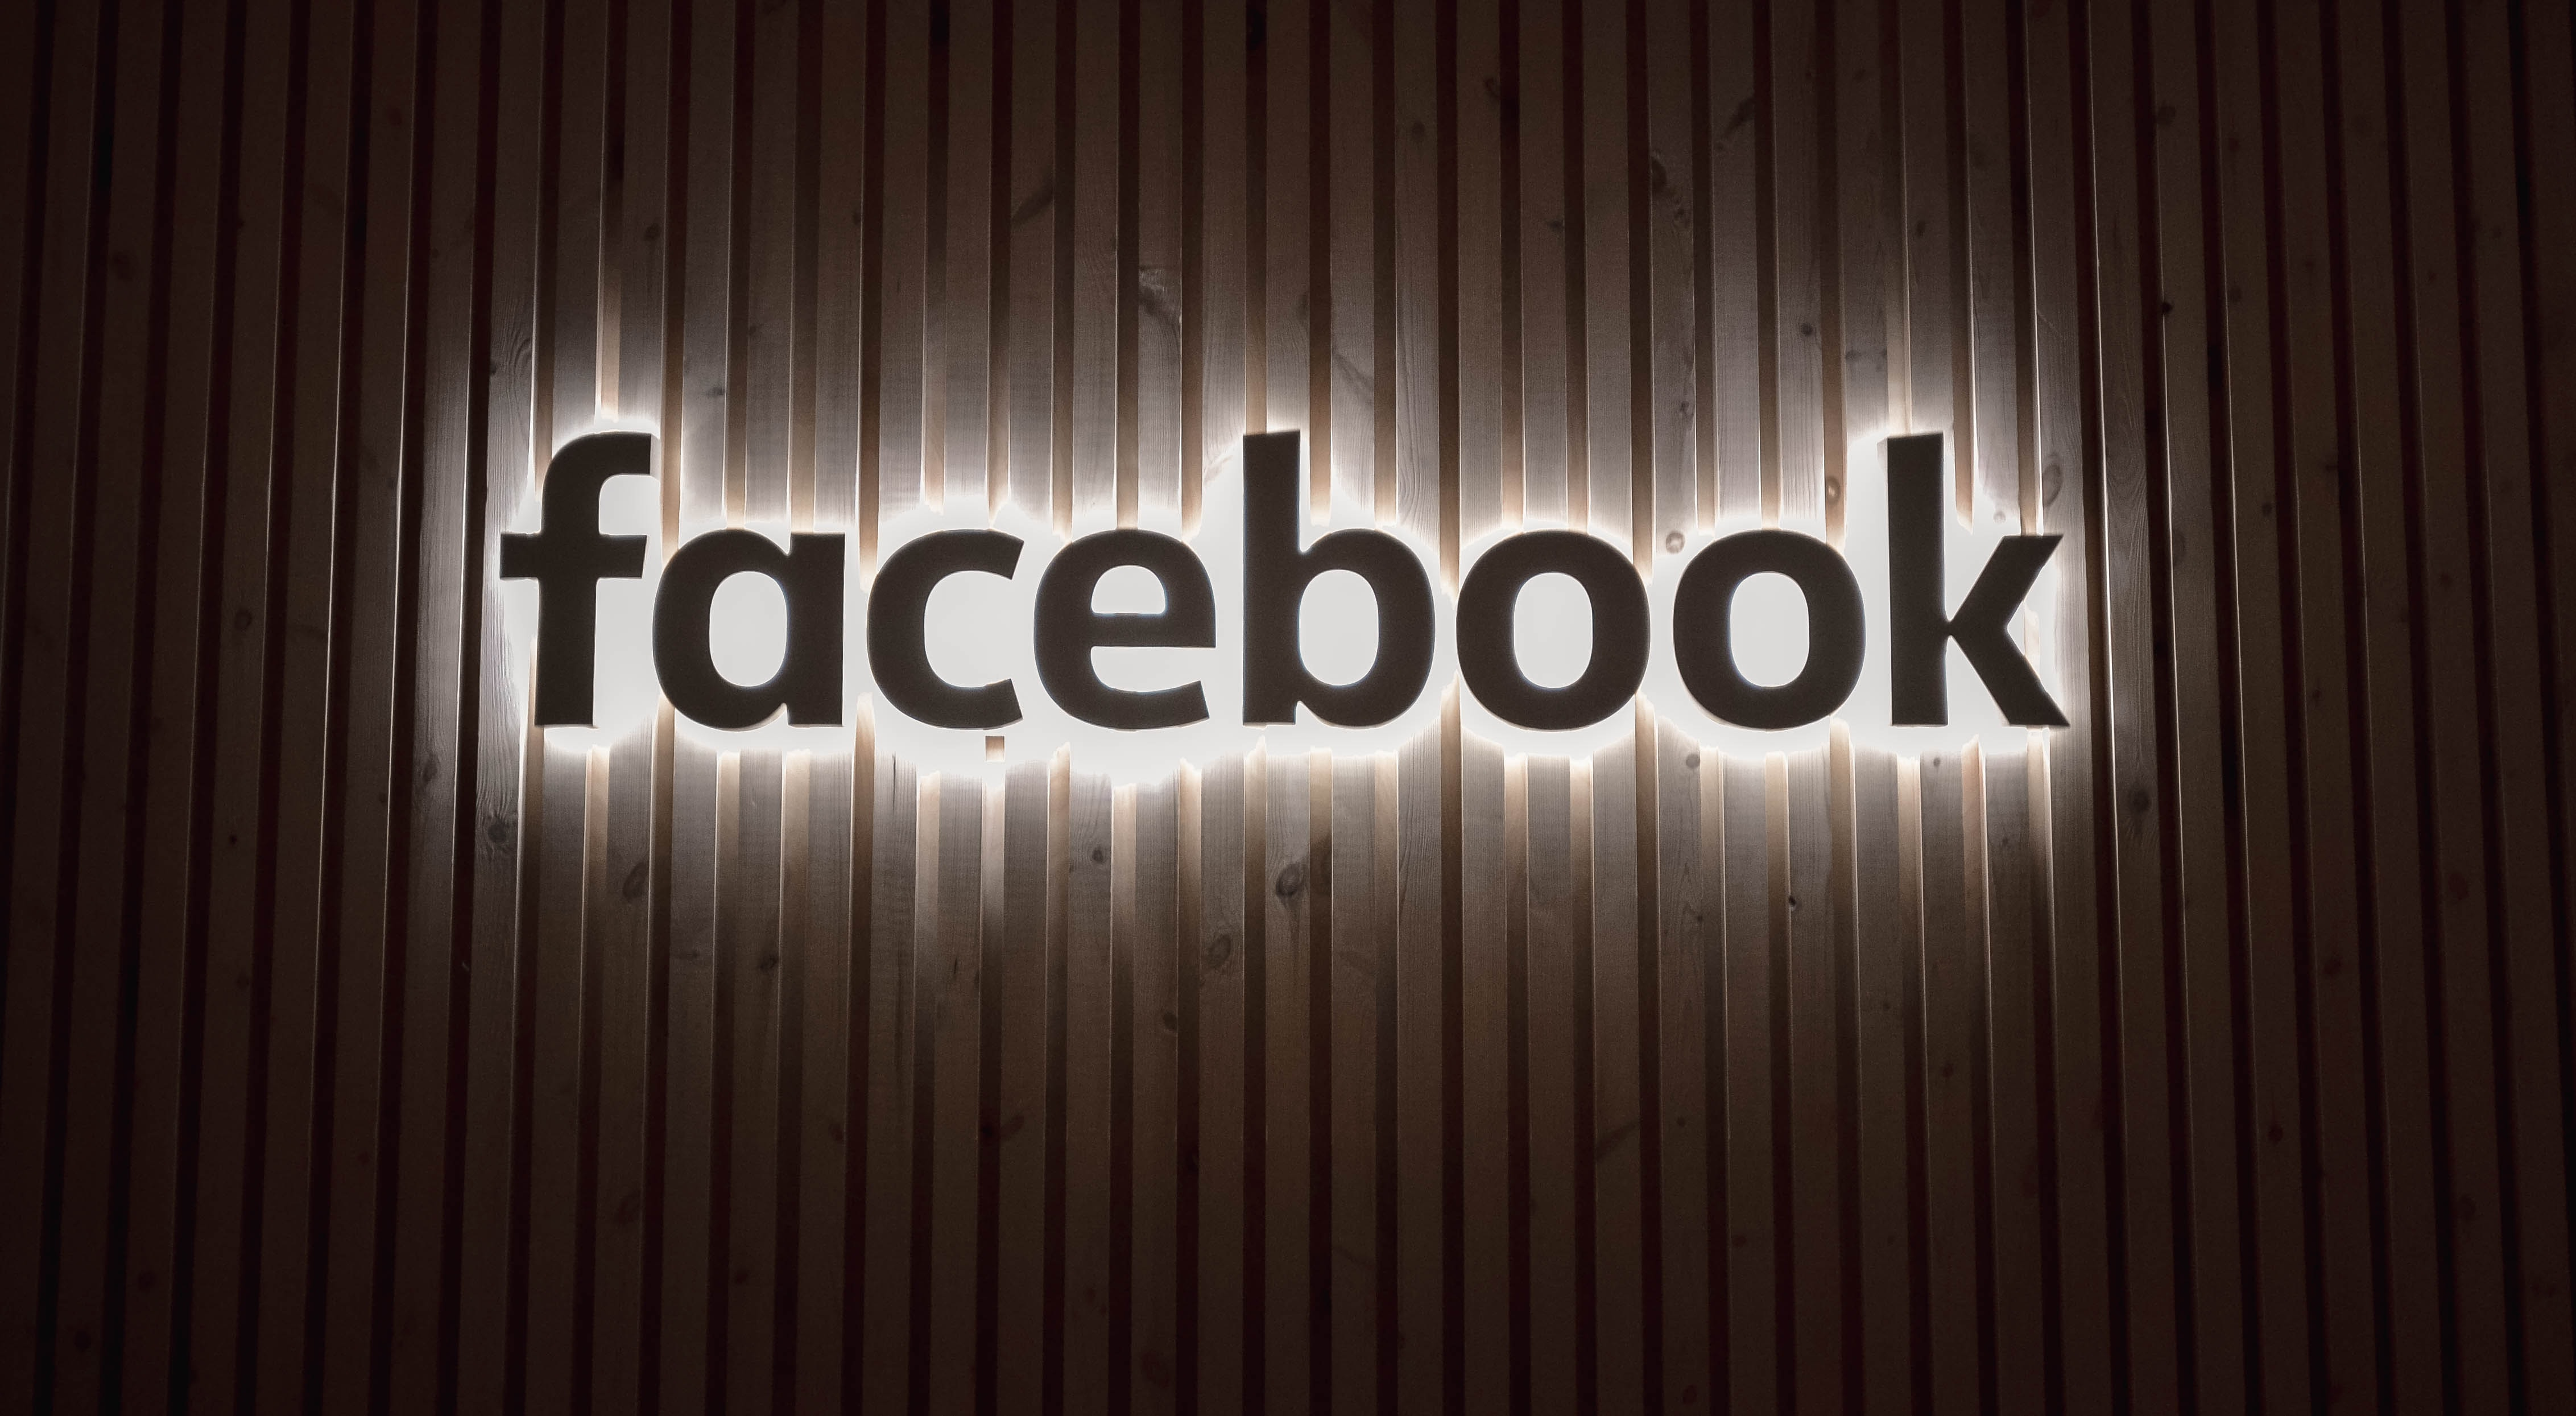 Facebook Fellowship Program Includes $42,000 Annual Stipend to Doctoral Students